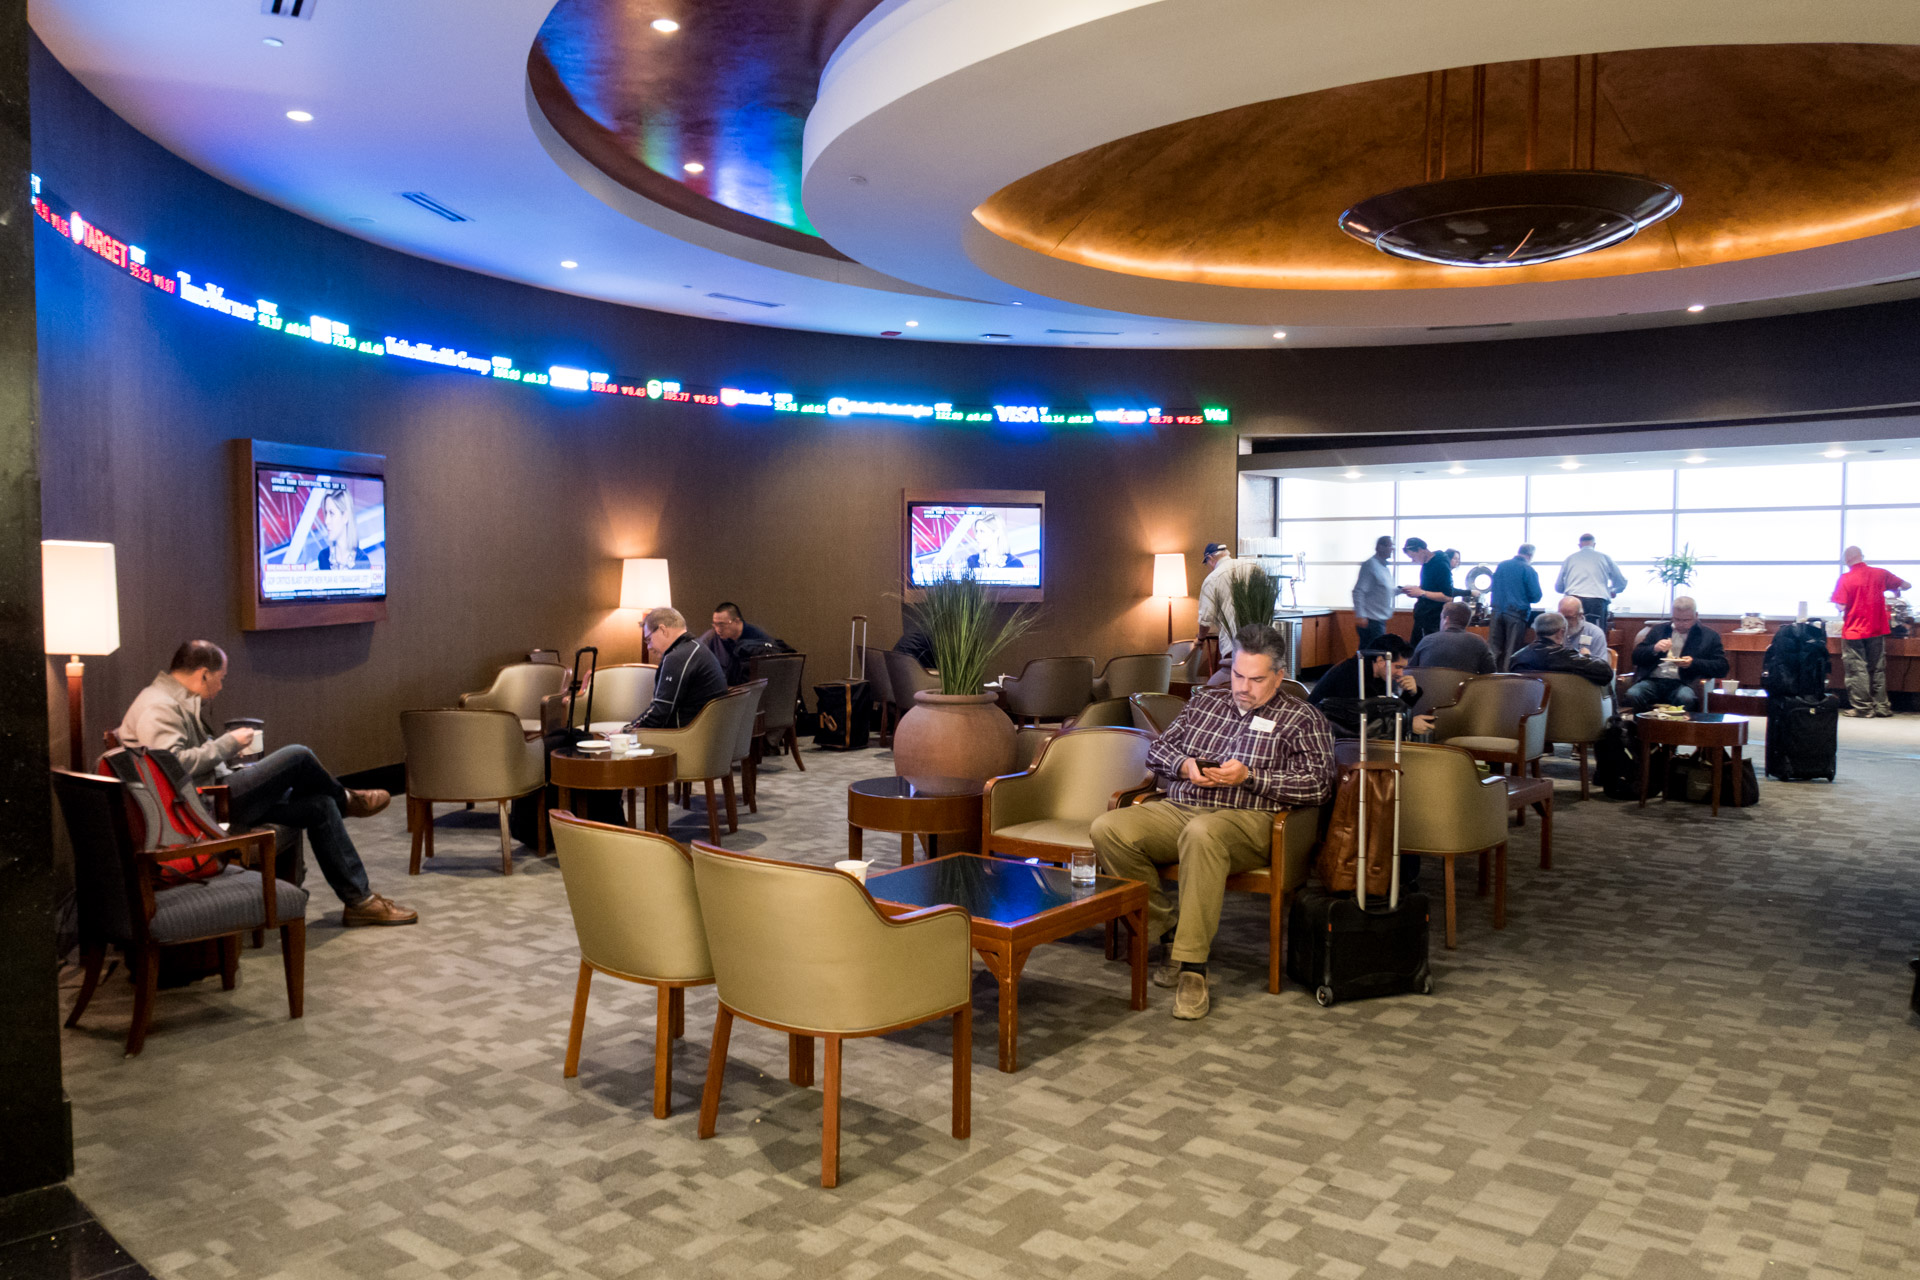 Lounge Review: Delta Sky Club Near Gate A38 at Detroit